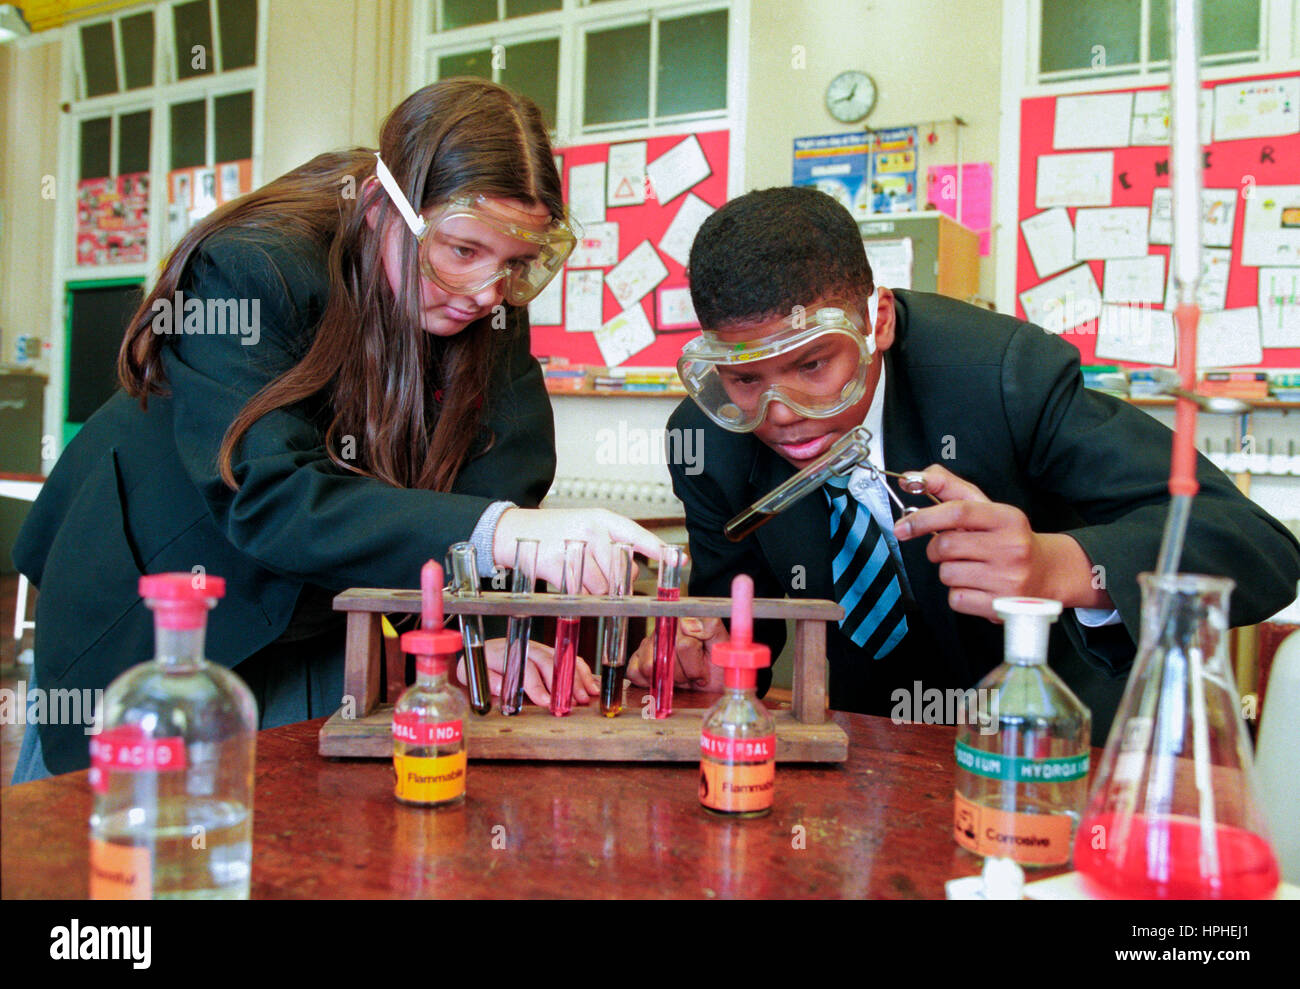 Secondary school pupils working on science experiments in classroom laboratories. - Stock Image